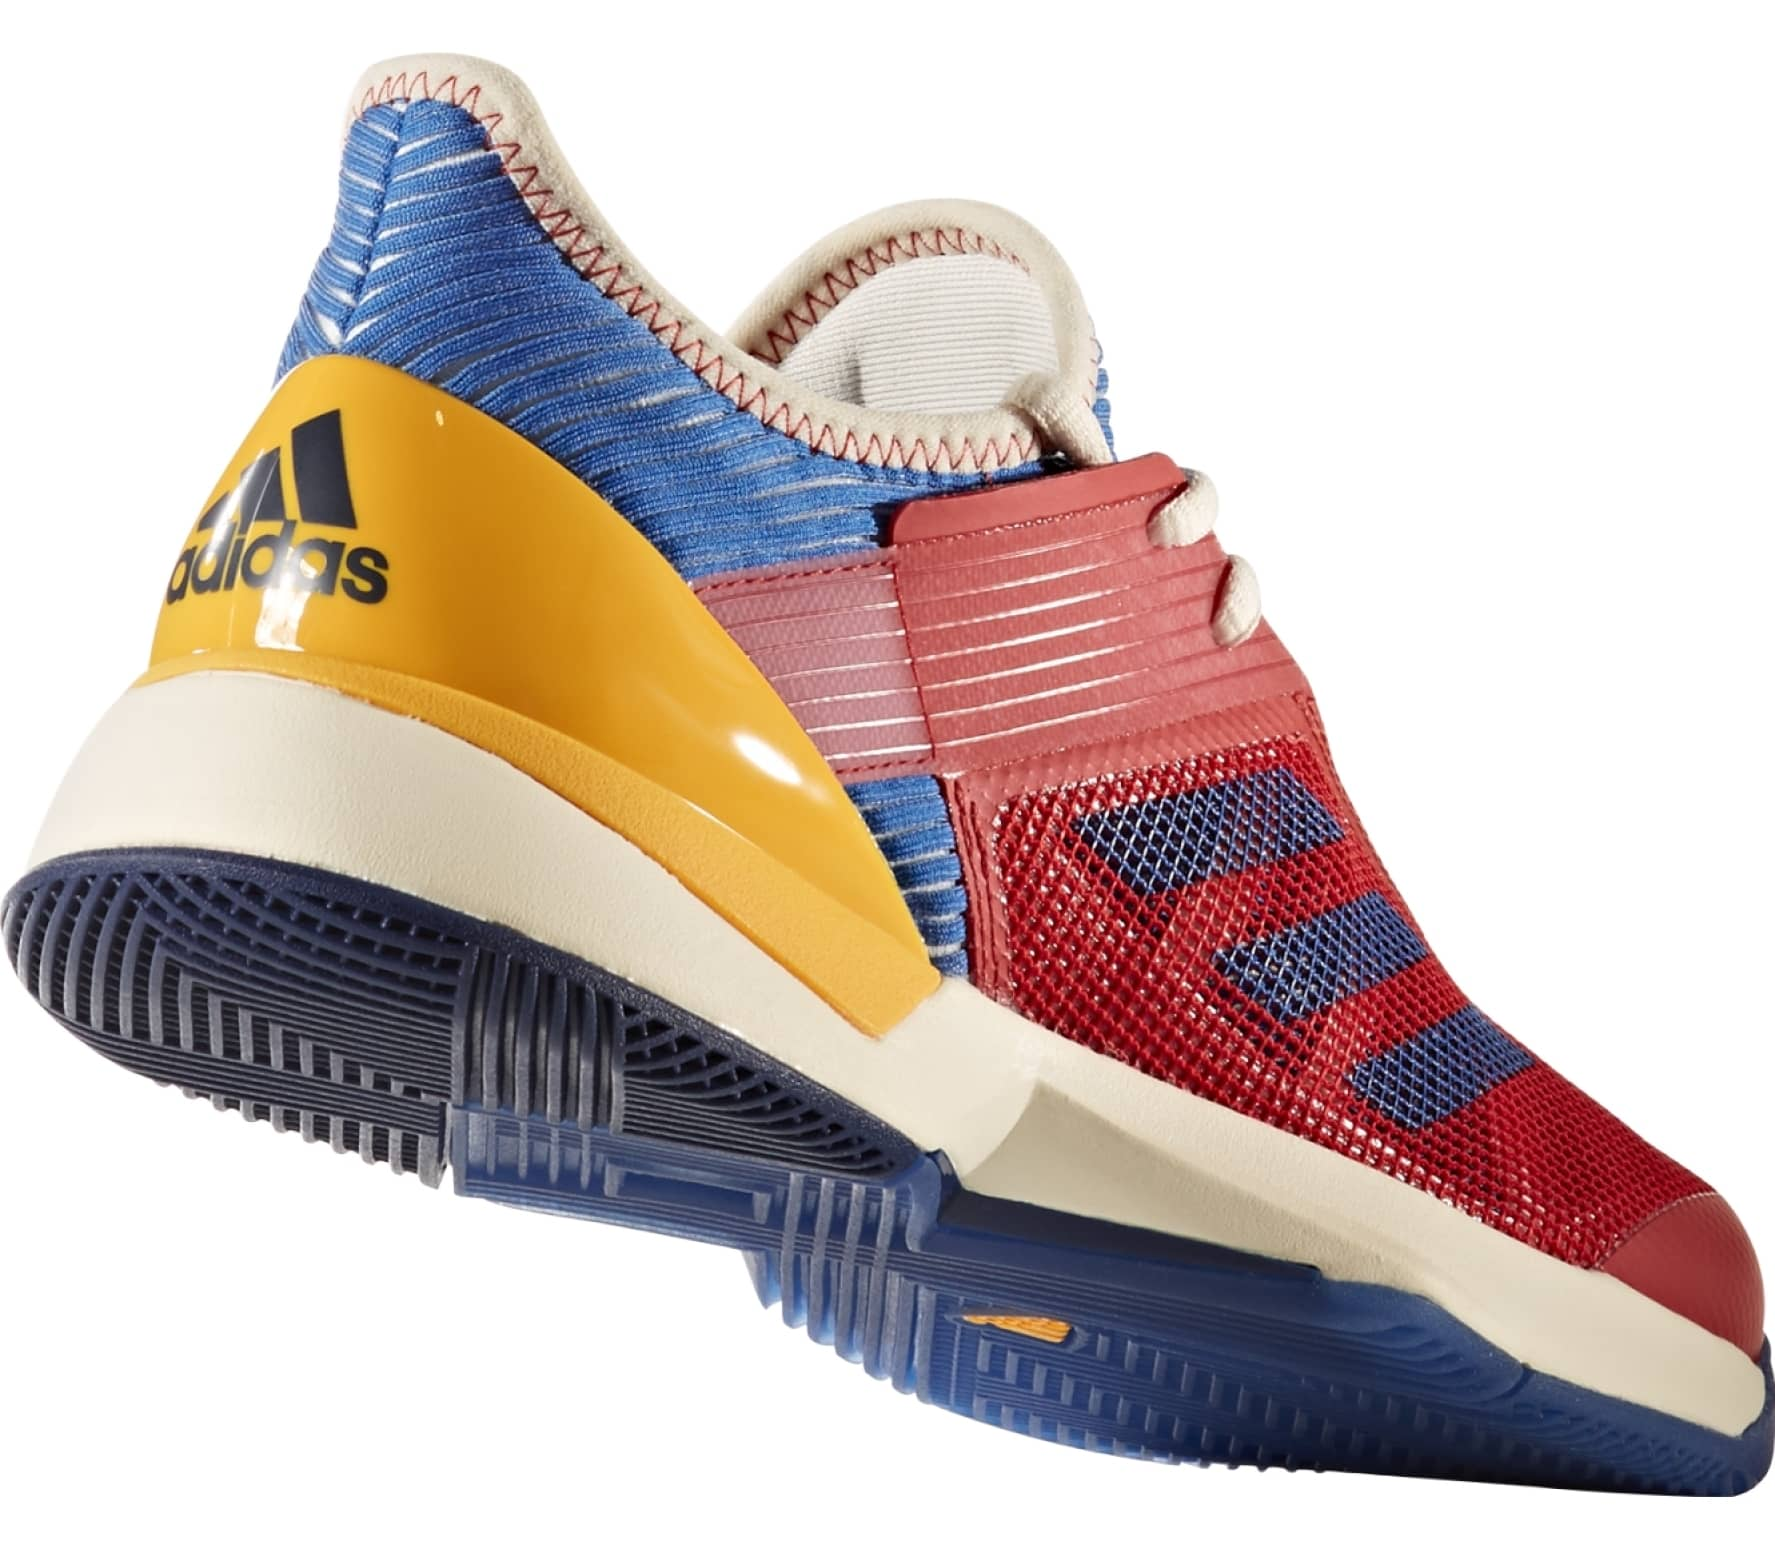 official photos 2989a 2ca12 Adidas - Adizero Ubersonic 3 Pharrell Williams womens tennis shoes  (whiteblue)